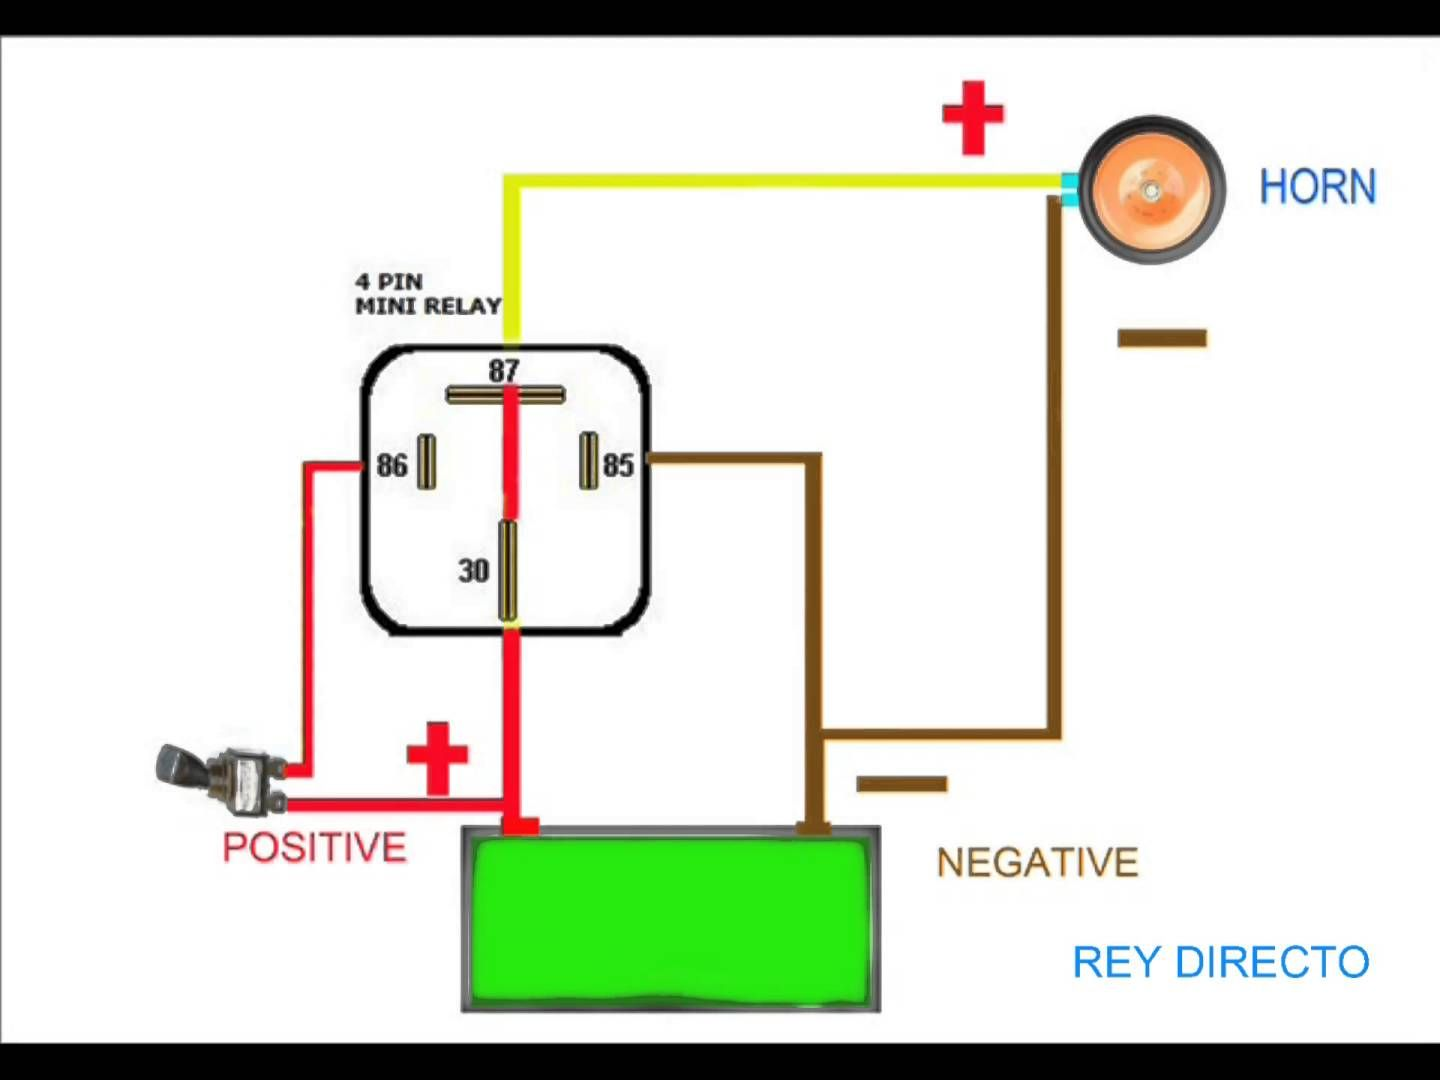 Horn Relay Simple Wiring Youtube And Bosch Relay Diagram For Horn Inside Relay Car Horn Automotive Electrical